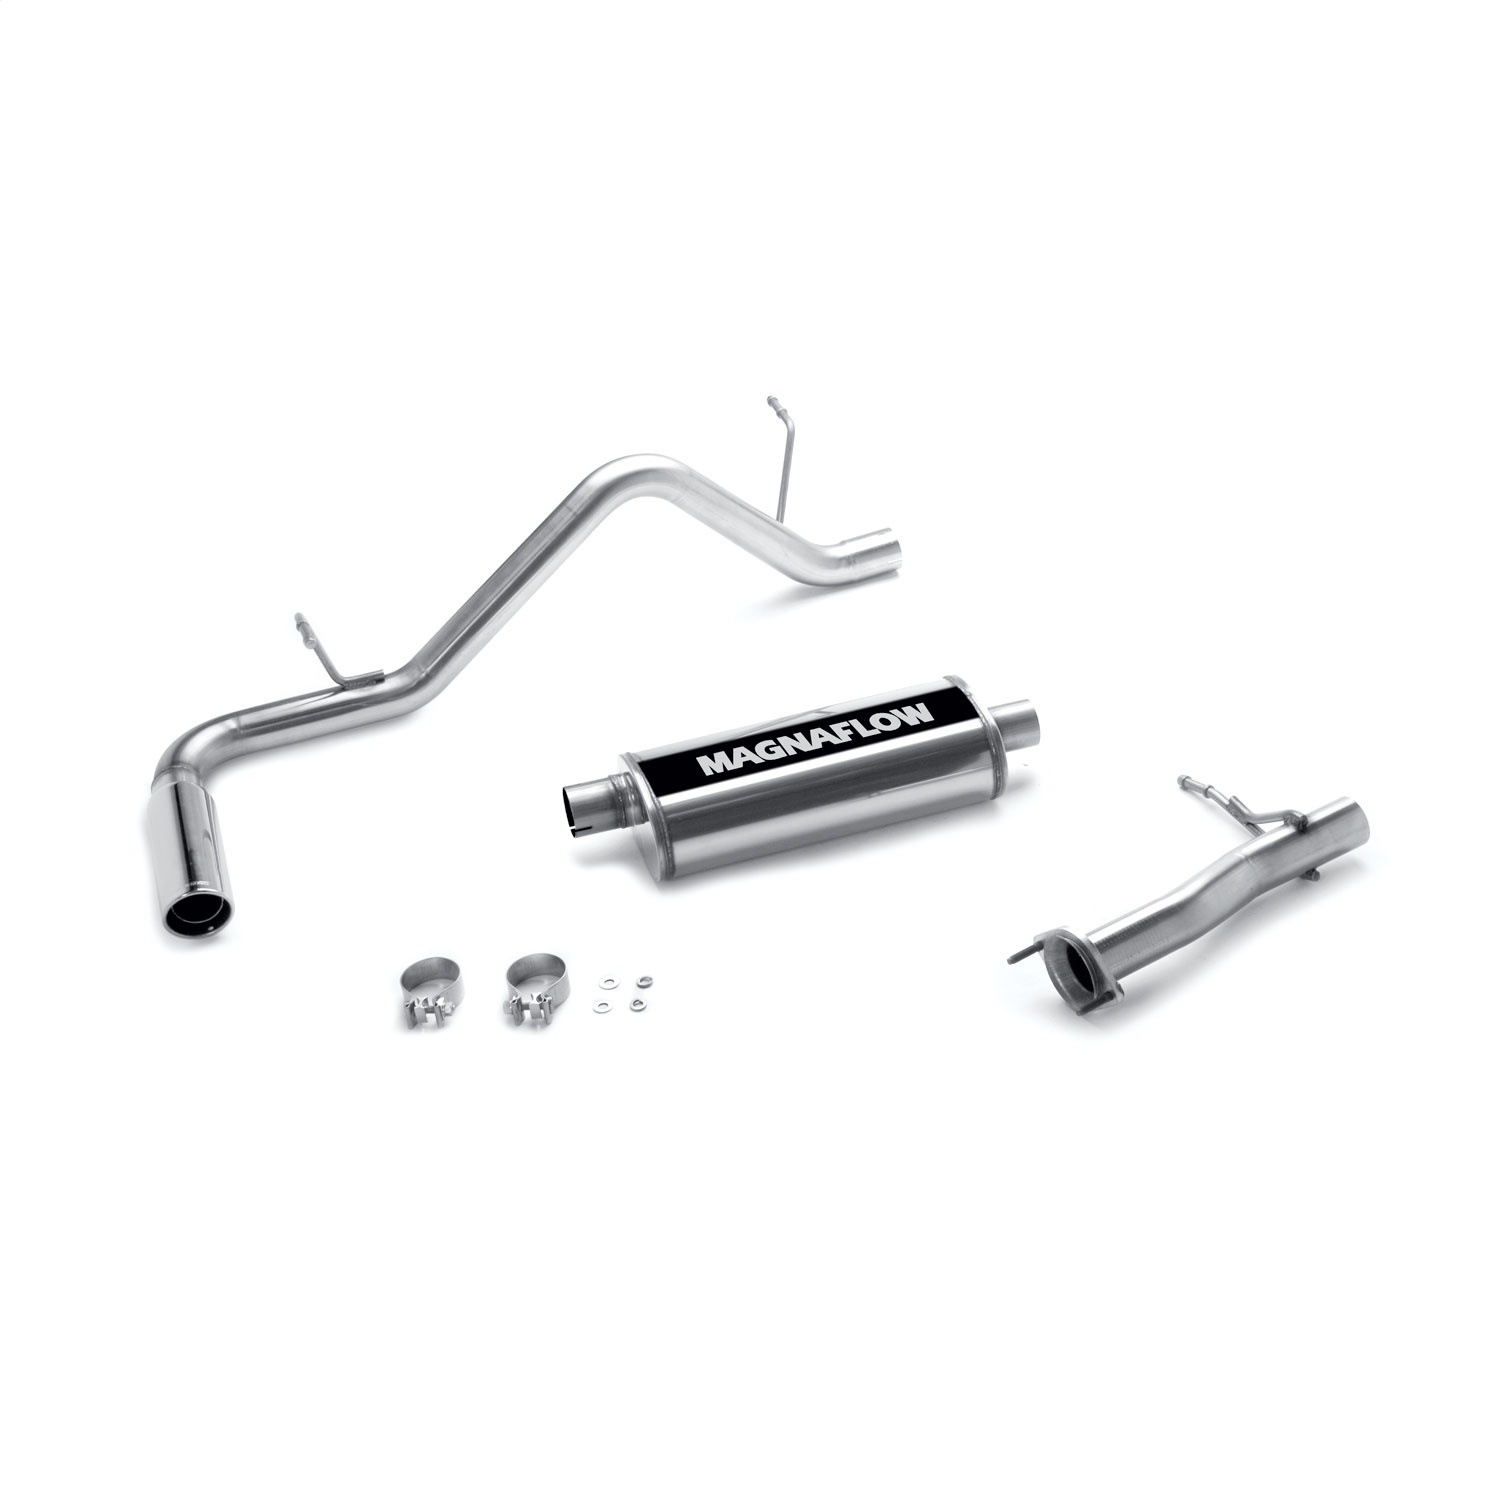 04-12 Chevrolet Colorado Magnaflow 3